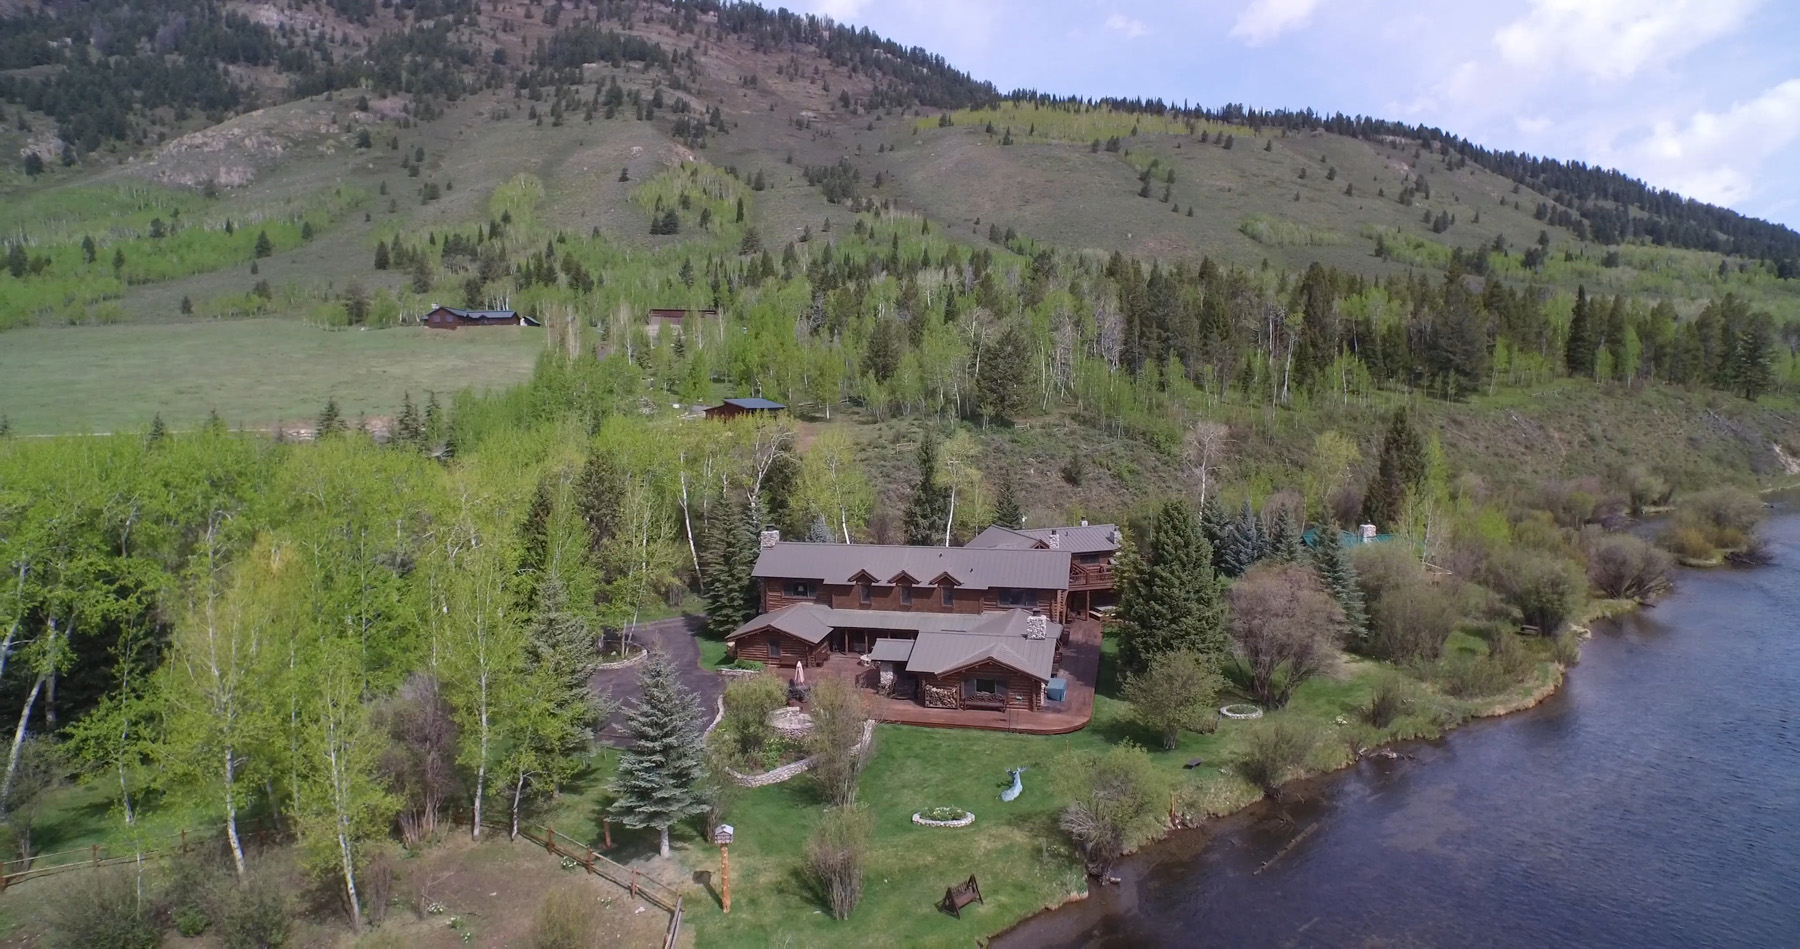 Maison unifamiliale pour l Vente à The Historic Lazy Moose Ranch 24552485 N Fish Creek Road Wilson, Wyoming, 83014 Jackson Hole, États-Unis